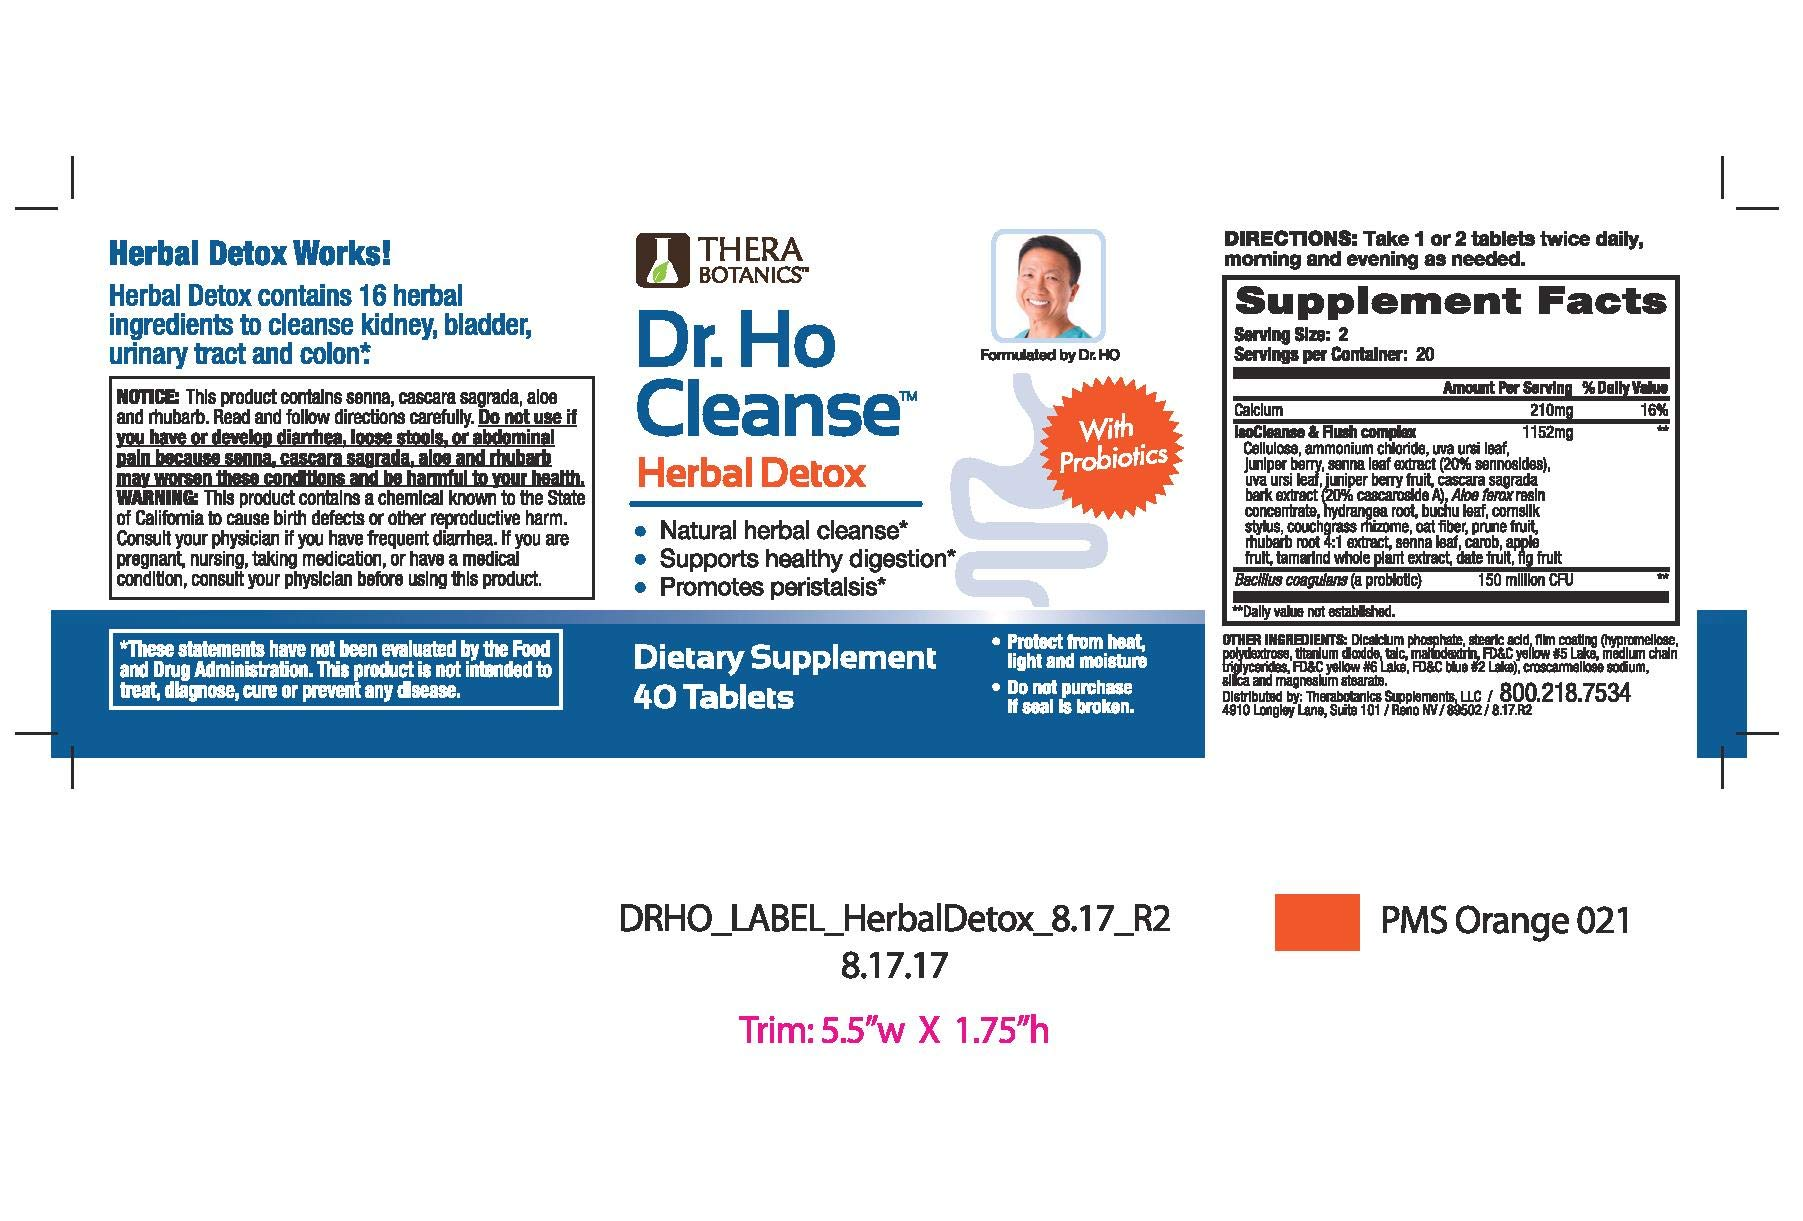 Dr. Ho Cleanse & Restore - Detox-Eliminate Built-up Toxins and Waste; Relieve Discomfort from Constipation, Gas, Upset Stomach; Feel Lighter, Slimmer Energize Gluten Free Fiber Rich Detoxification by Dr Ho's